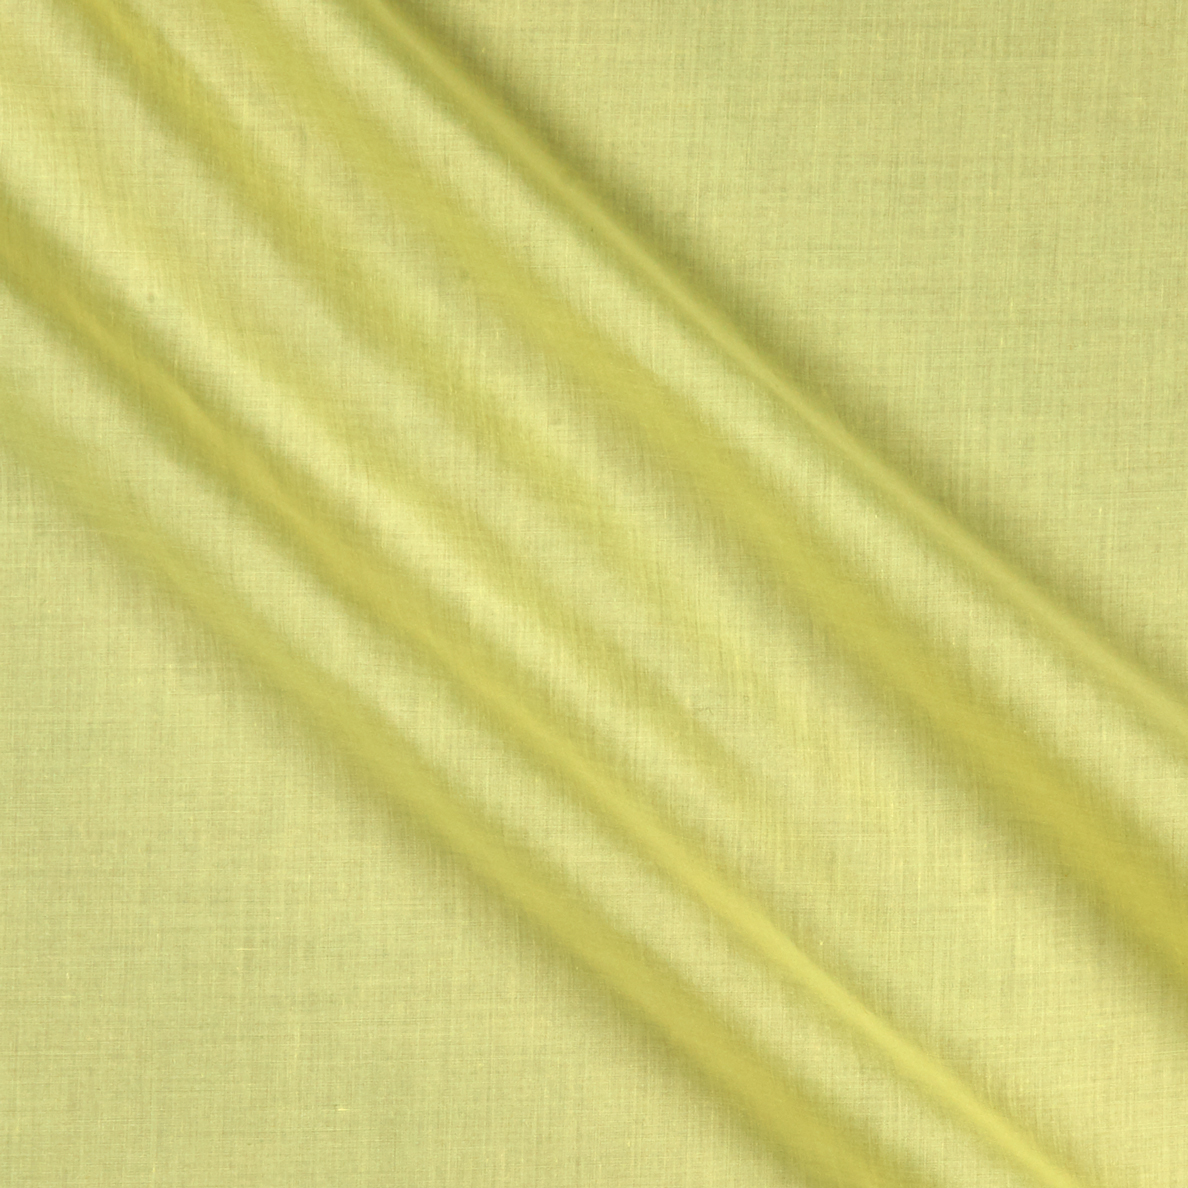 60'' Poly Cotton Broadcloth Light Yellow Fabric by Ben in USA